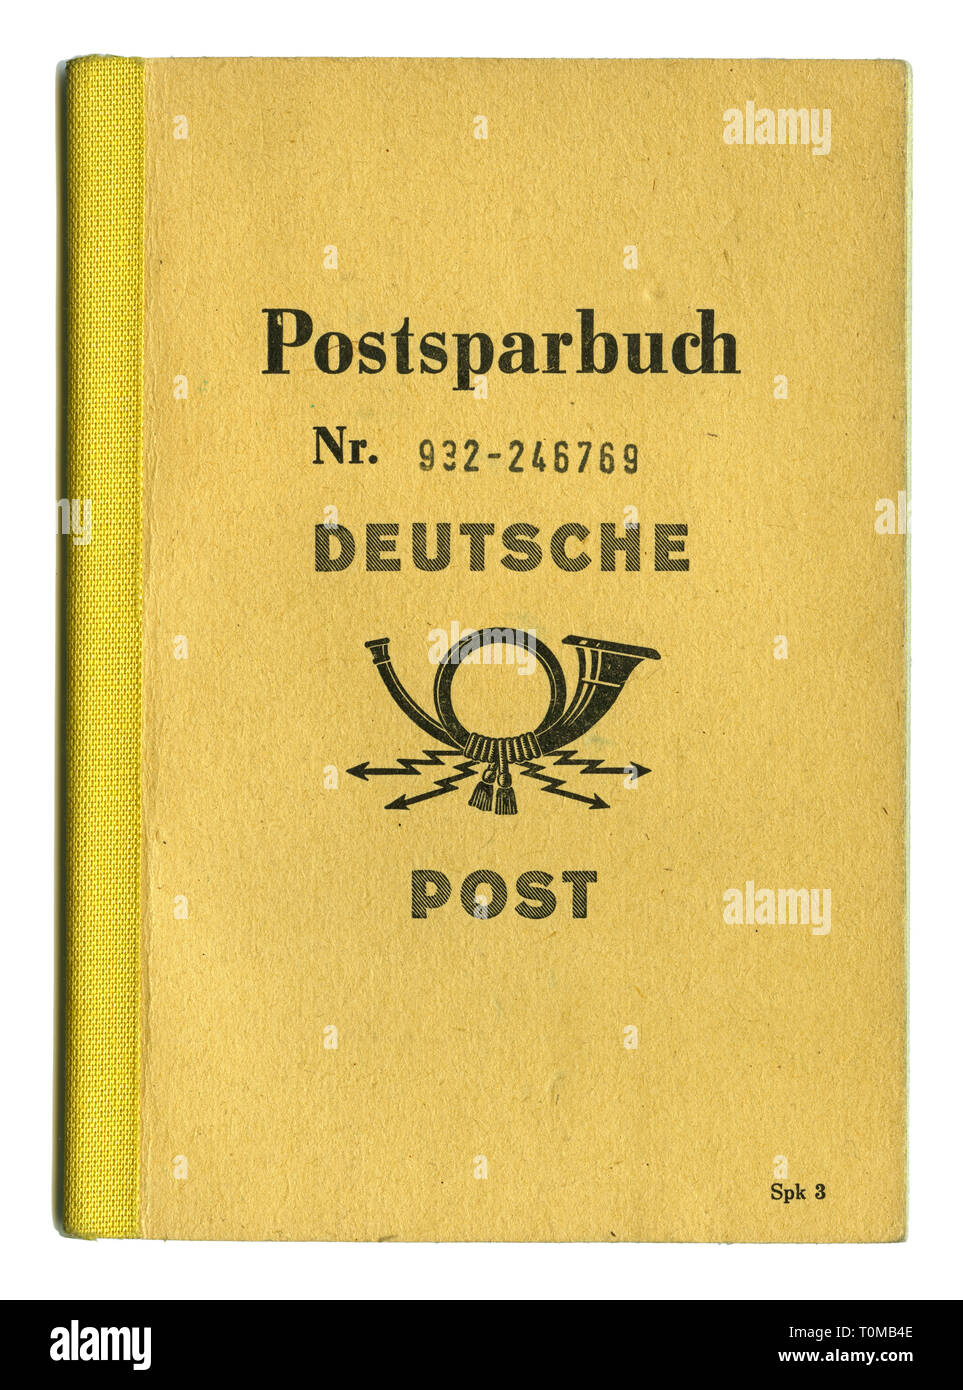 mail, postal savings book, East-Germany, 1972, Additional-Rights-Clearance-Info-Not-Available Stock Photo